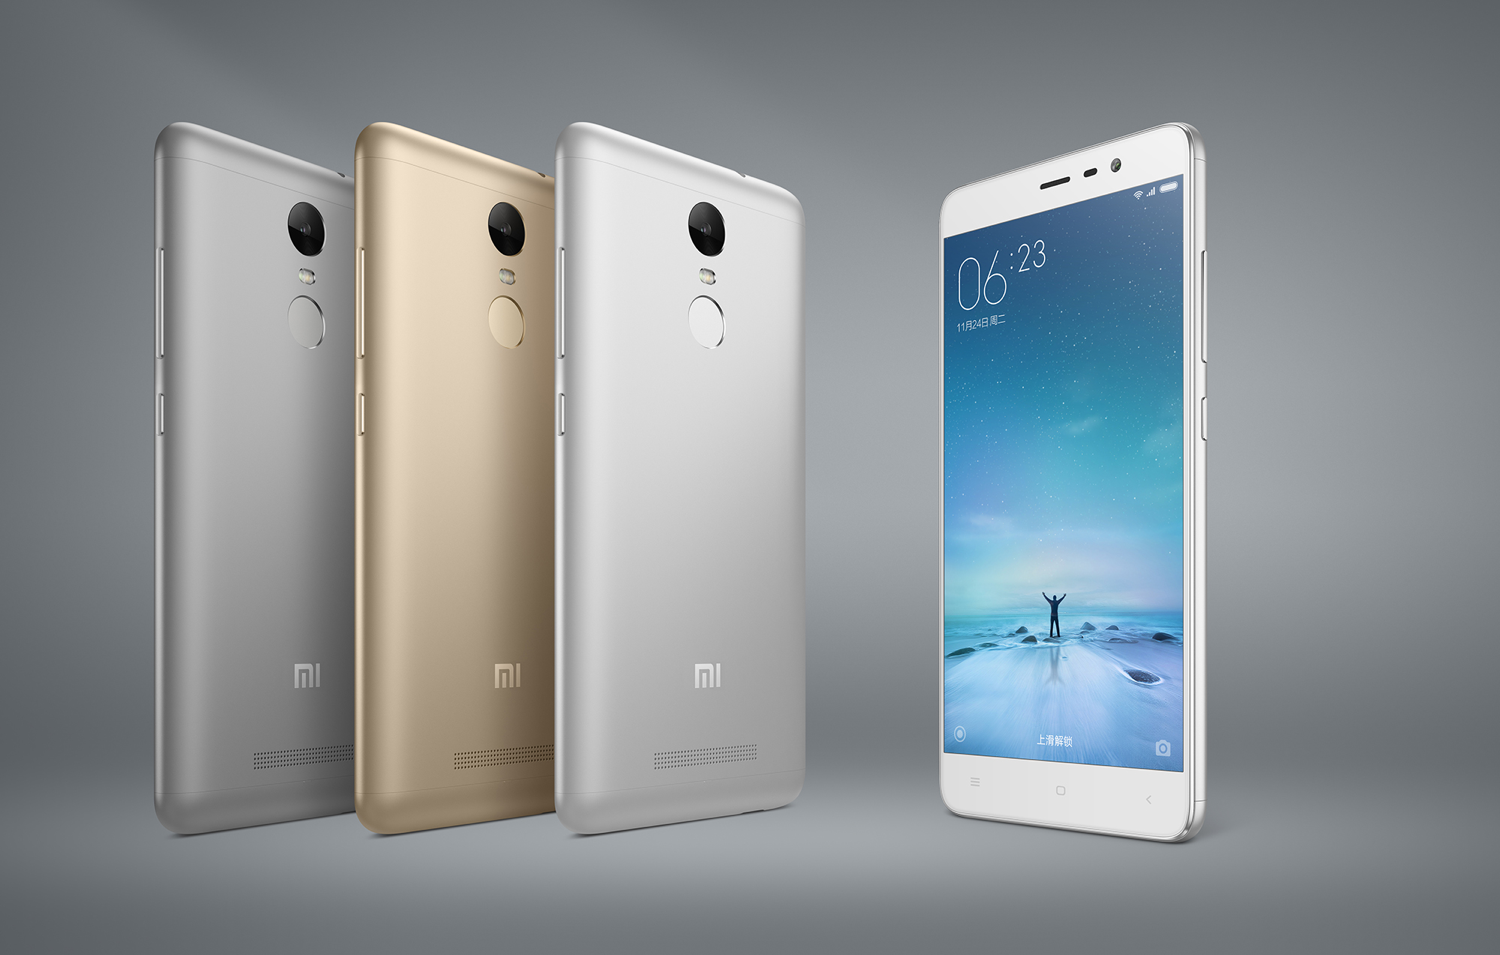 Xiaomi Mi Pad 2, Redmi Note 3 are Shockingly Cheap